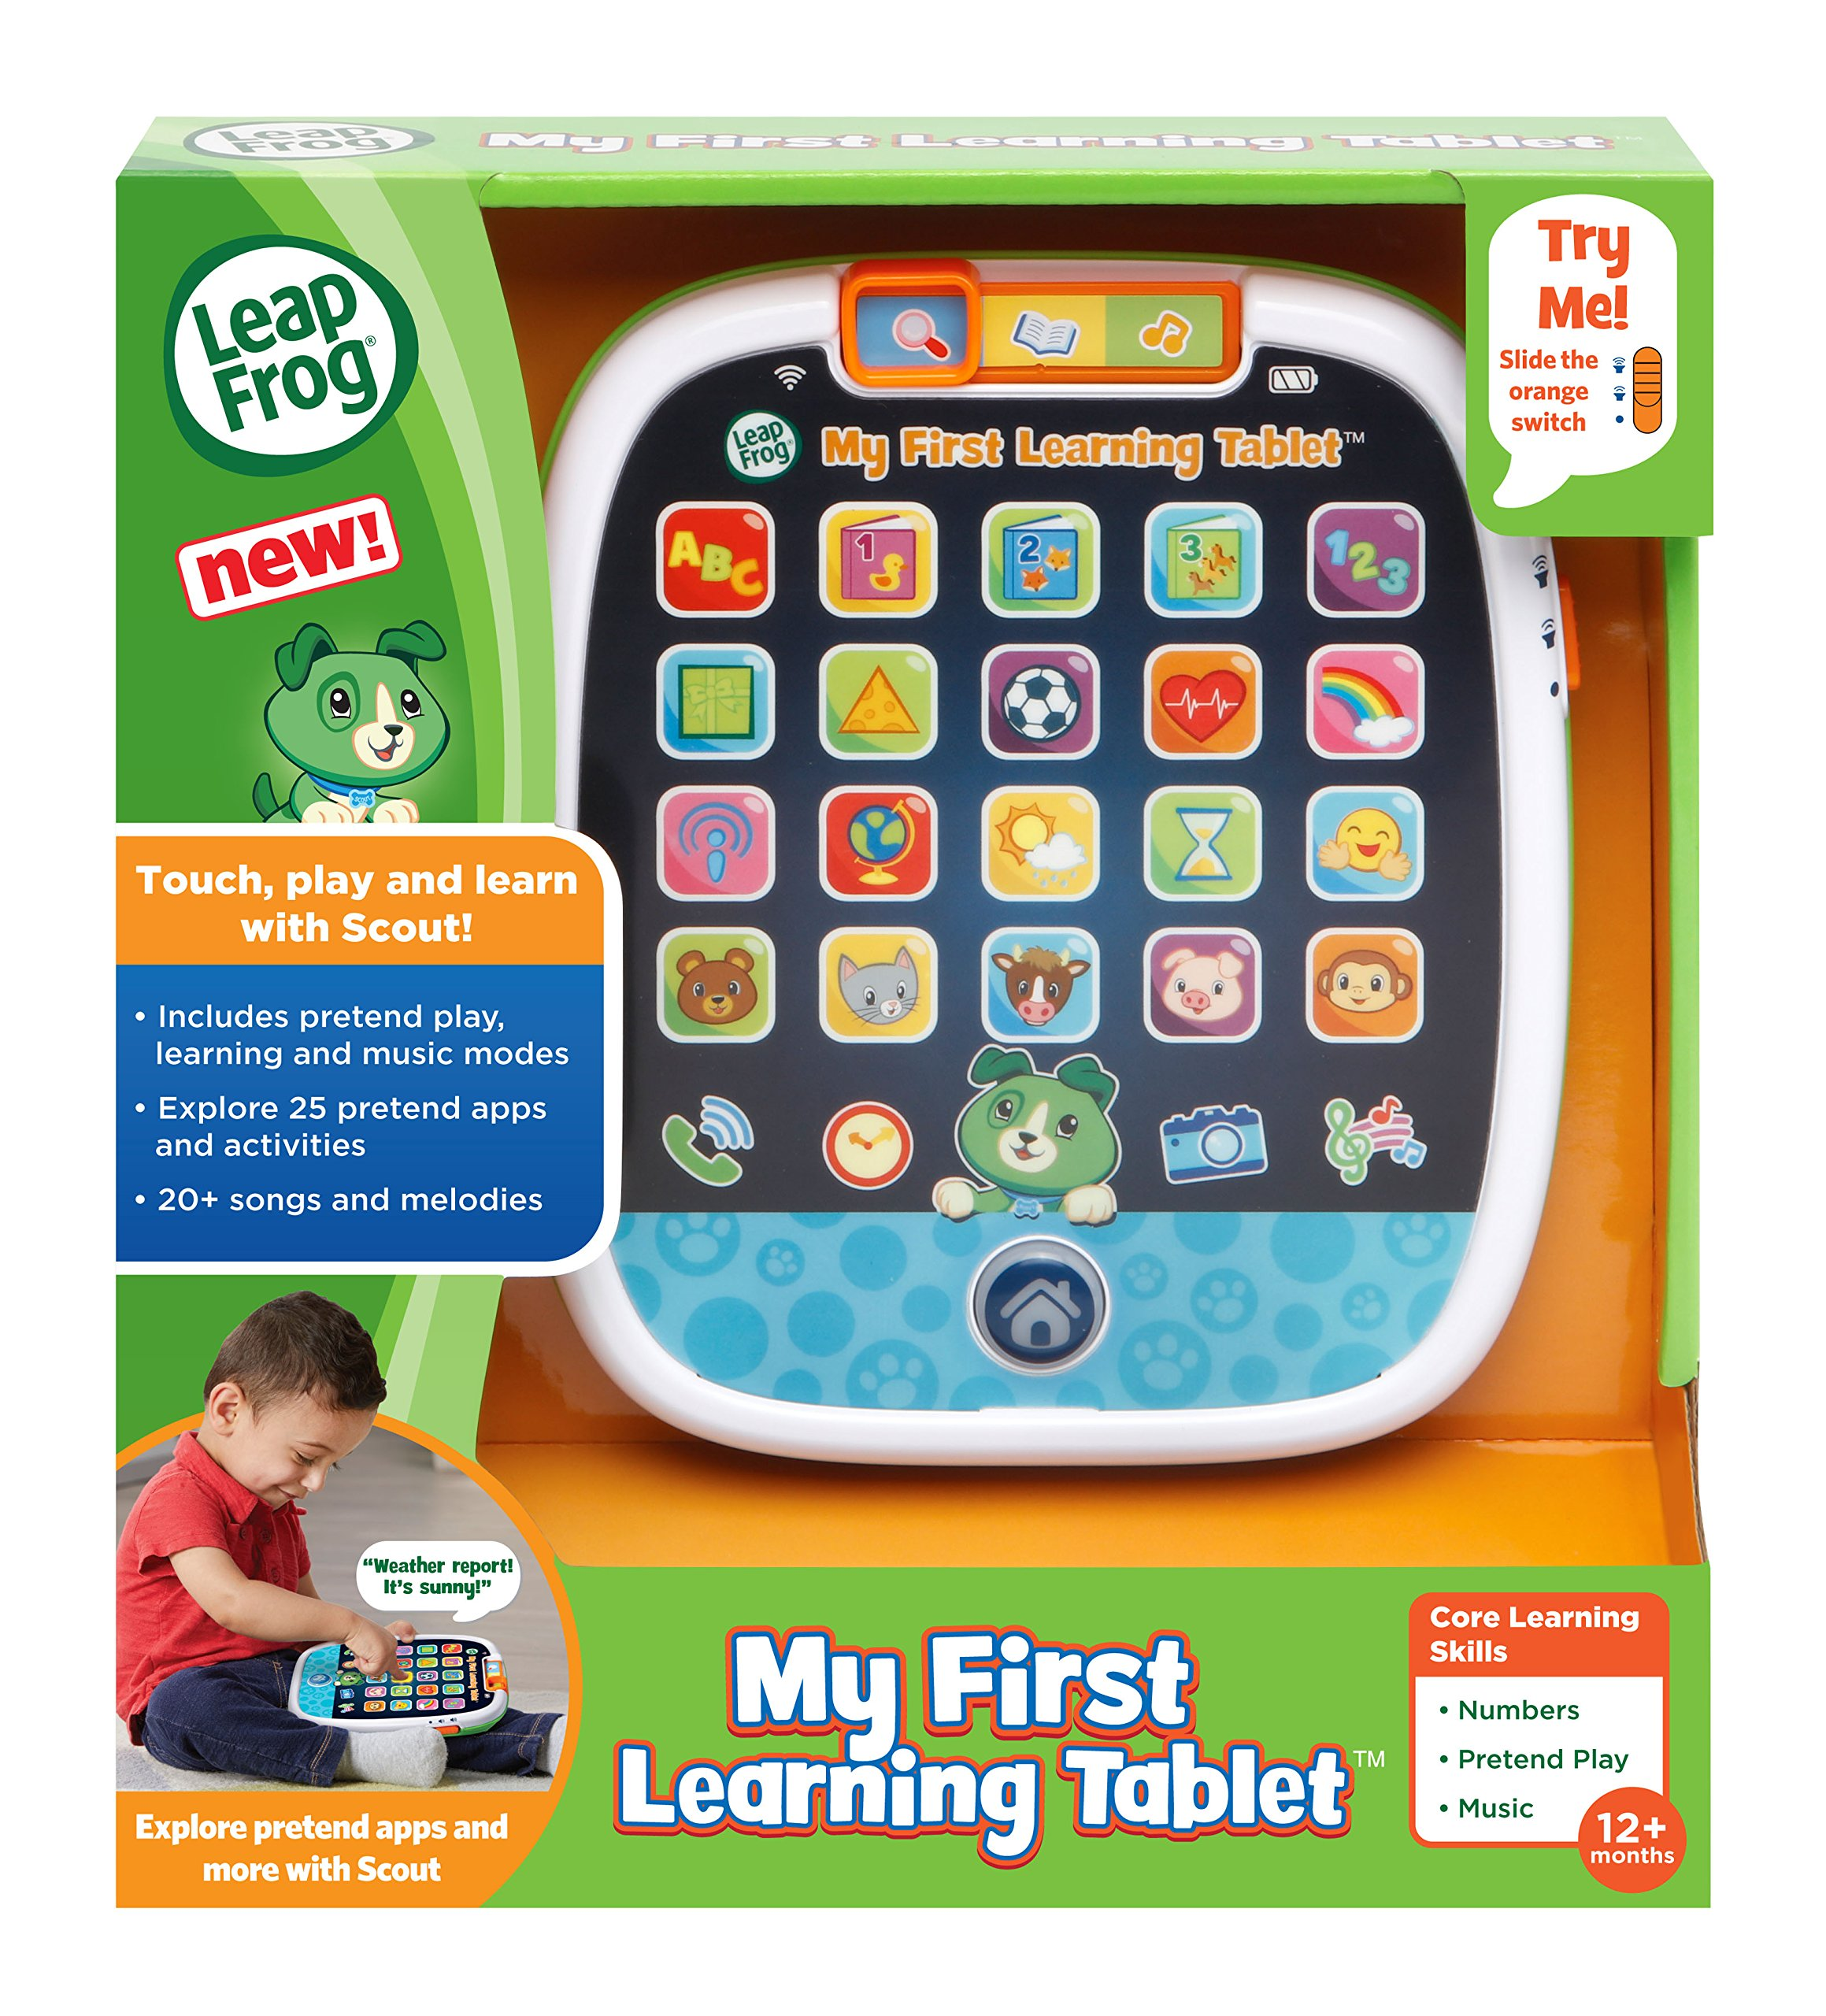 LeapFrog My First Learning Tablet, Black by LeapFrog (Image #6)